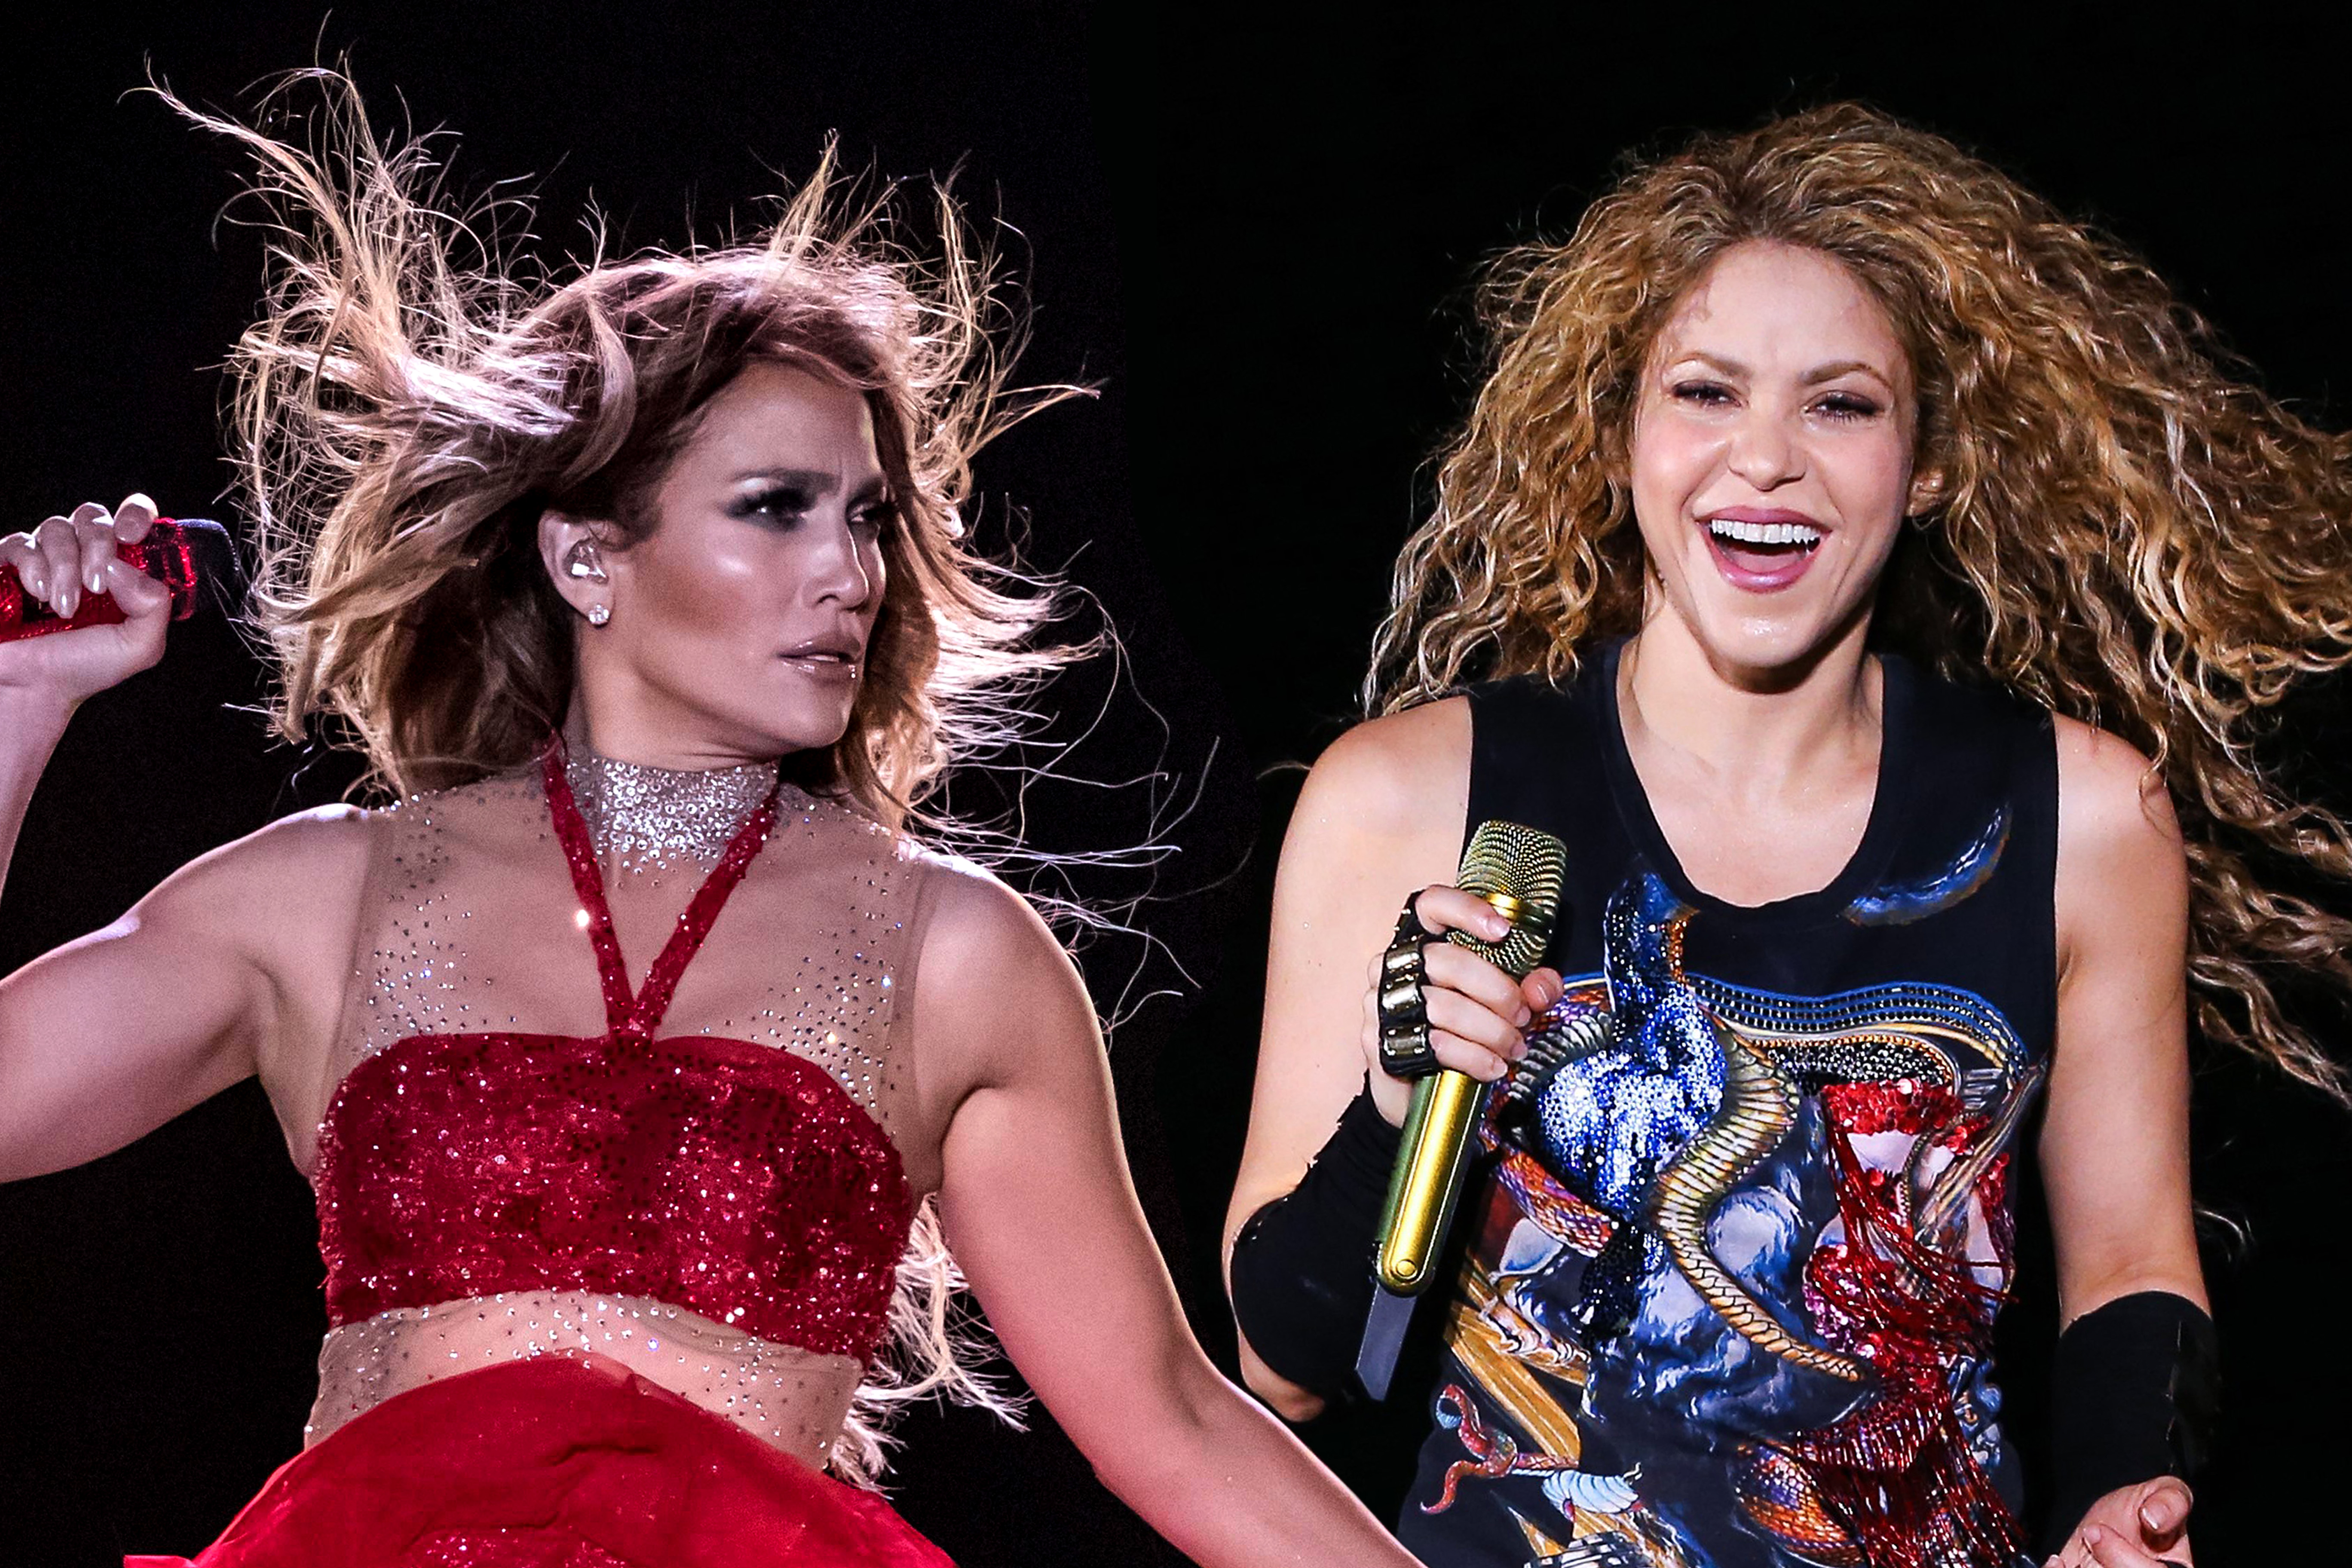 Nfl Halftime Show 2020.J Lo And Shakira Will Perform At The 2020 Super Bowl